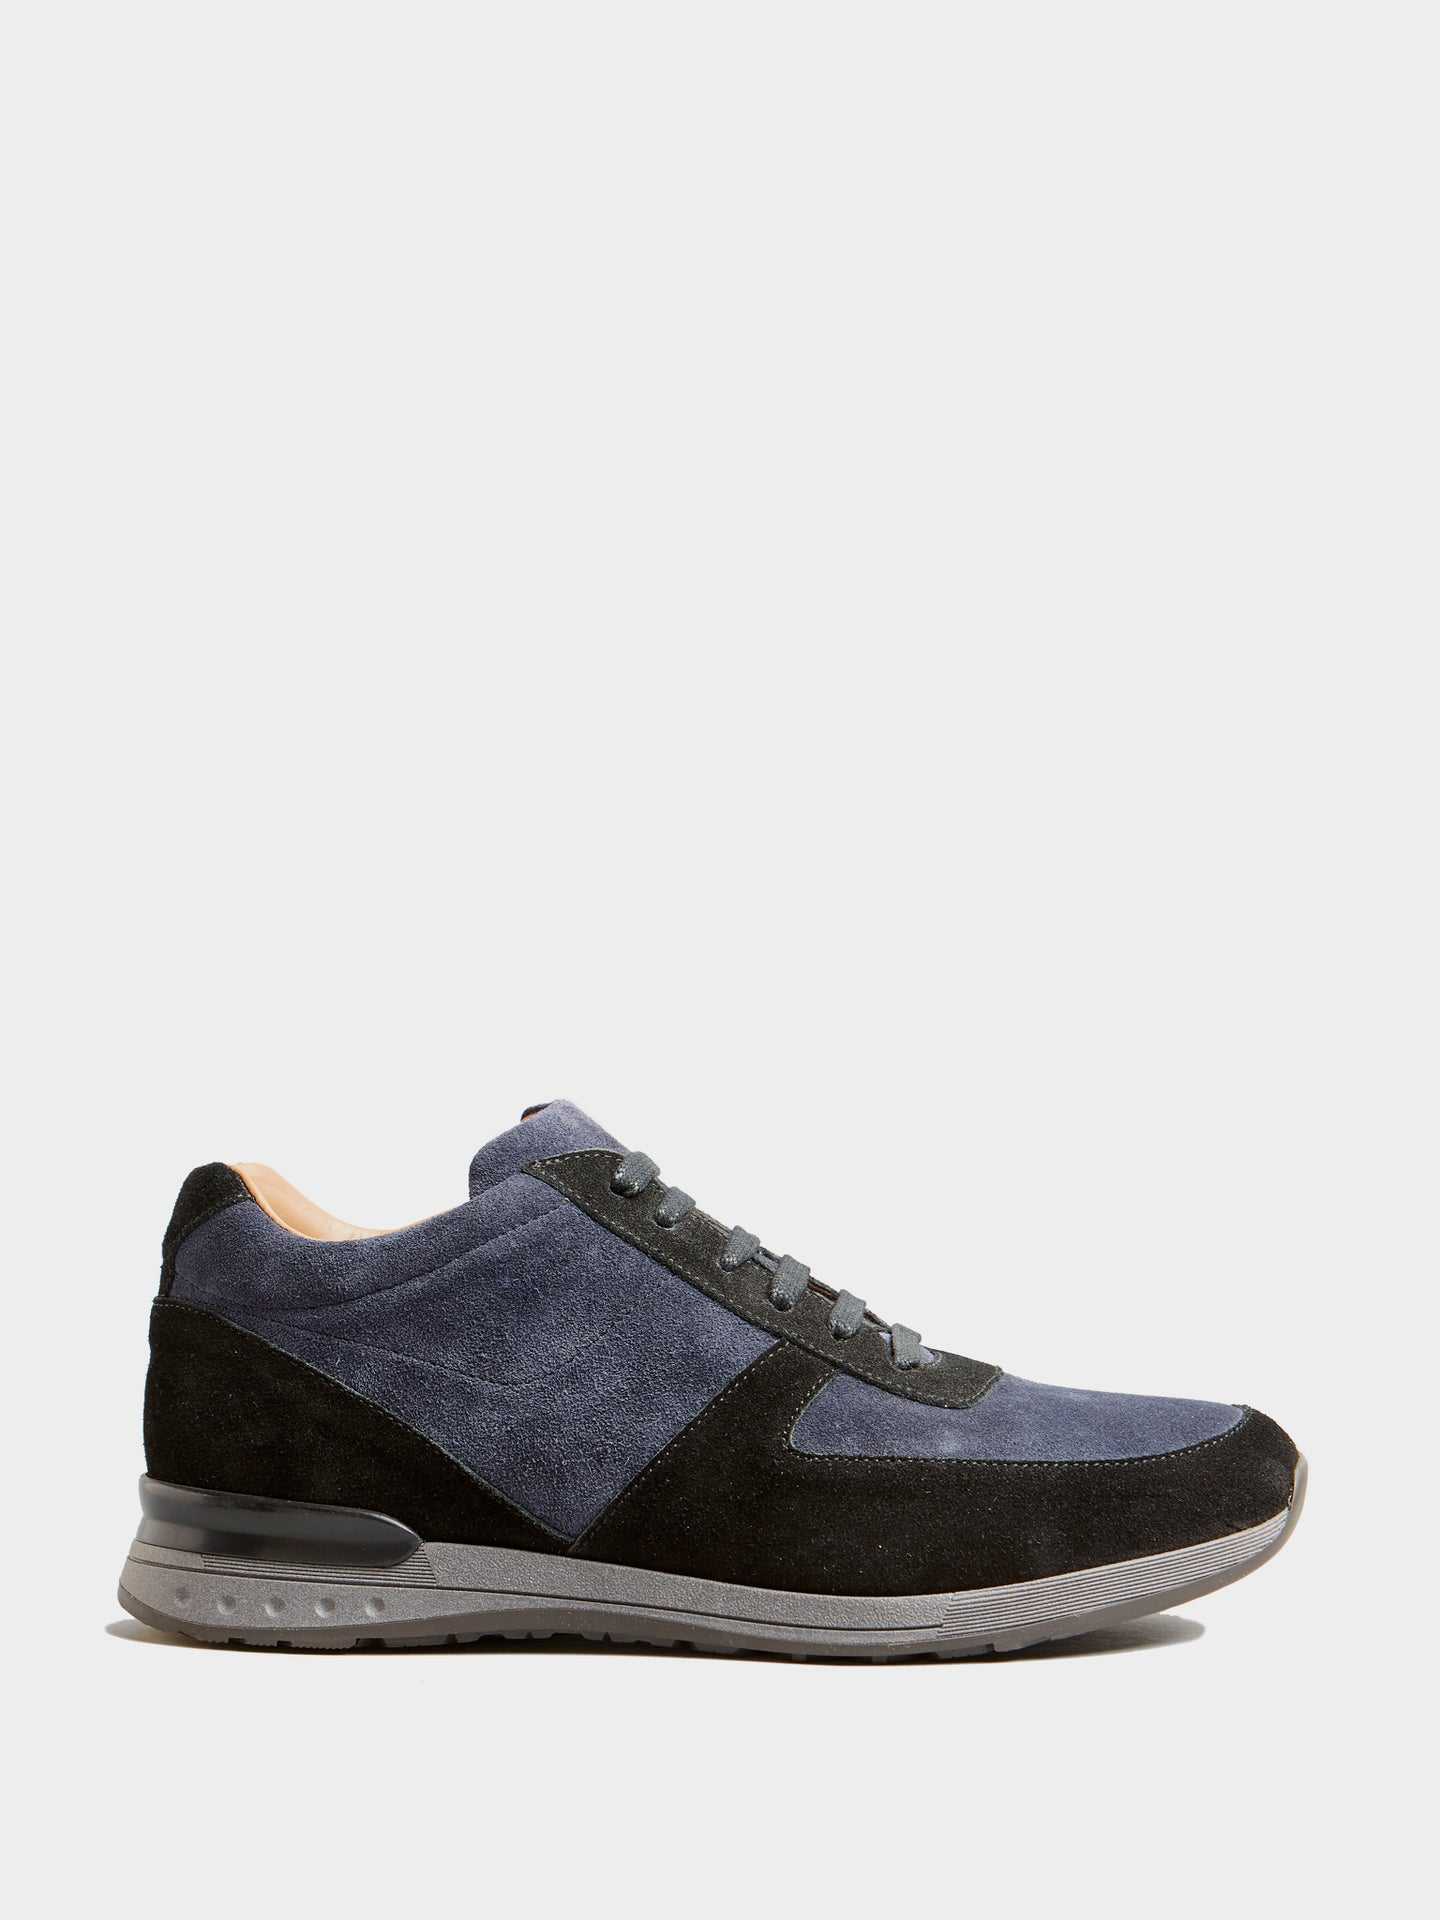 Corneliani Dress Trainer Suede (Blue and Black) - Union 22